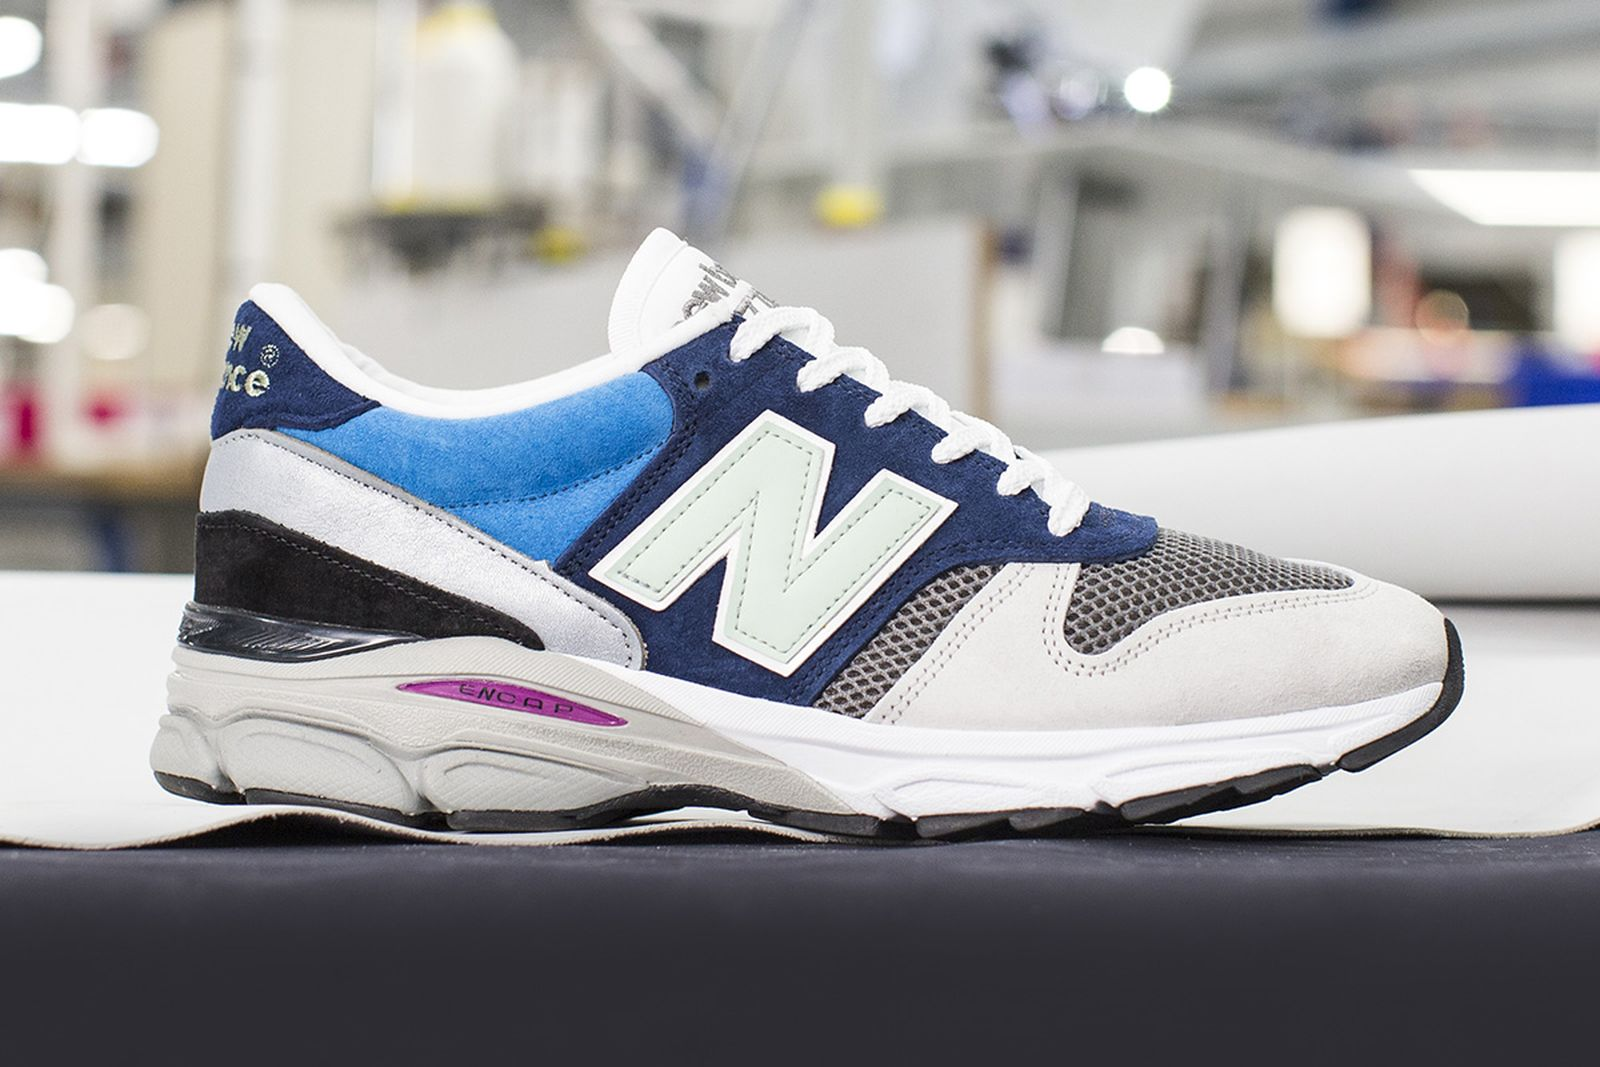 new balance made uk ss19 release date price NB Made Factory Off Foot Season 1 1 0005 NB Made Factory Off Foot Season 1 4 New Balance Made in UK